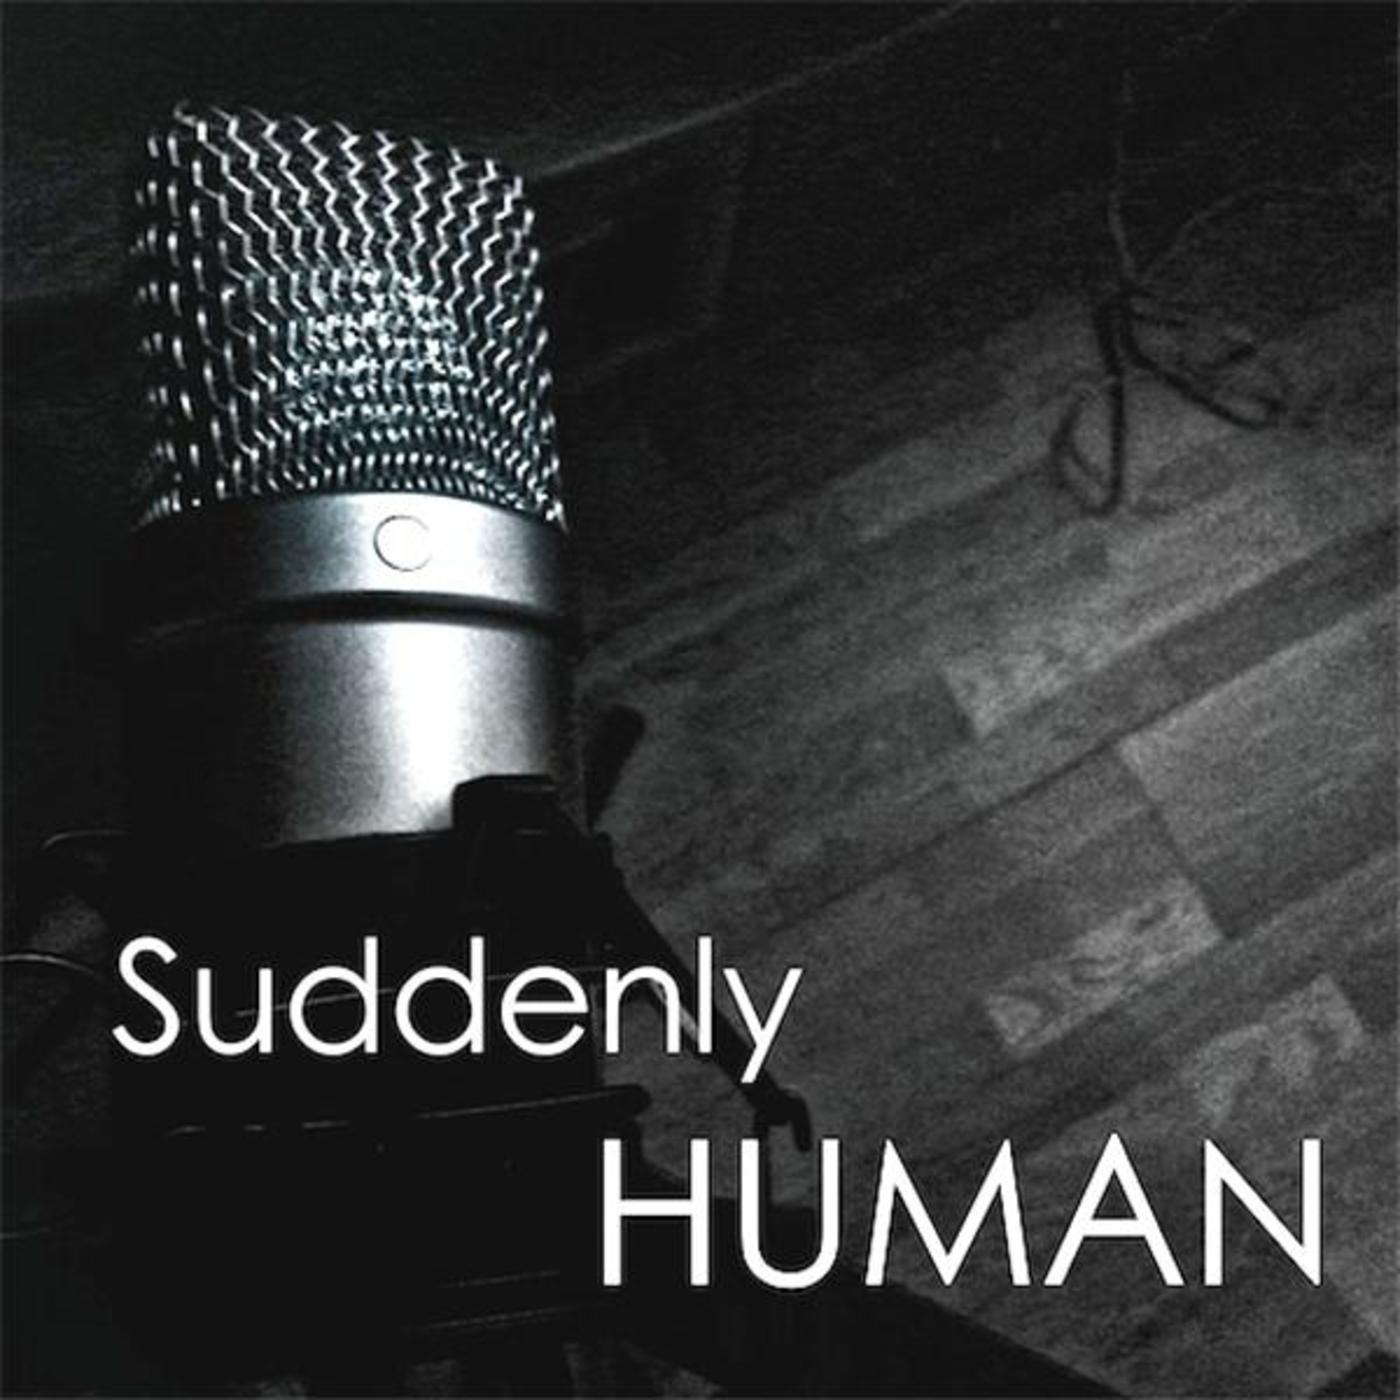 Suddenly Human